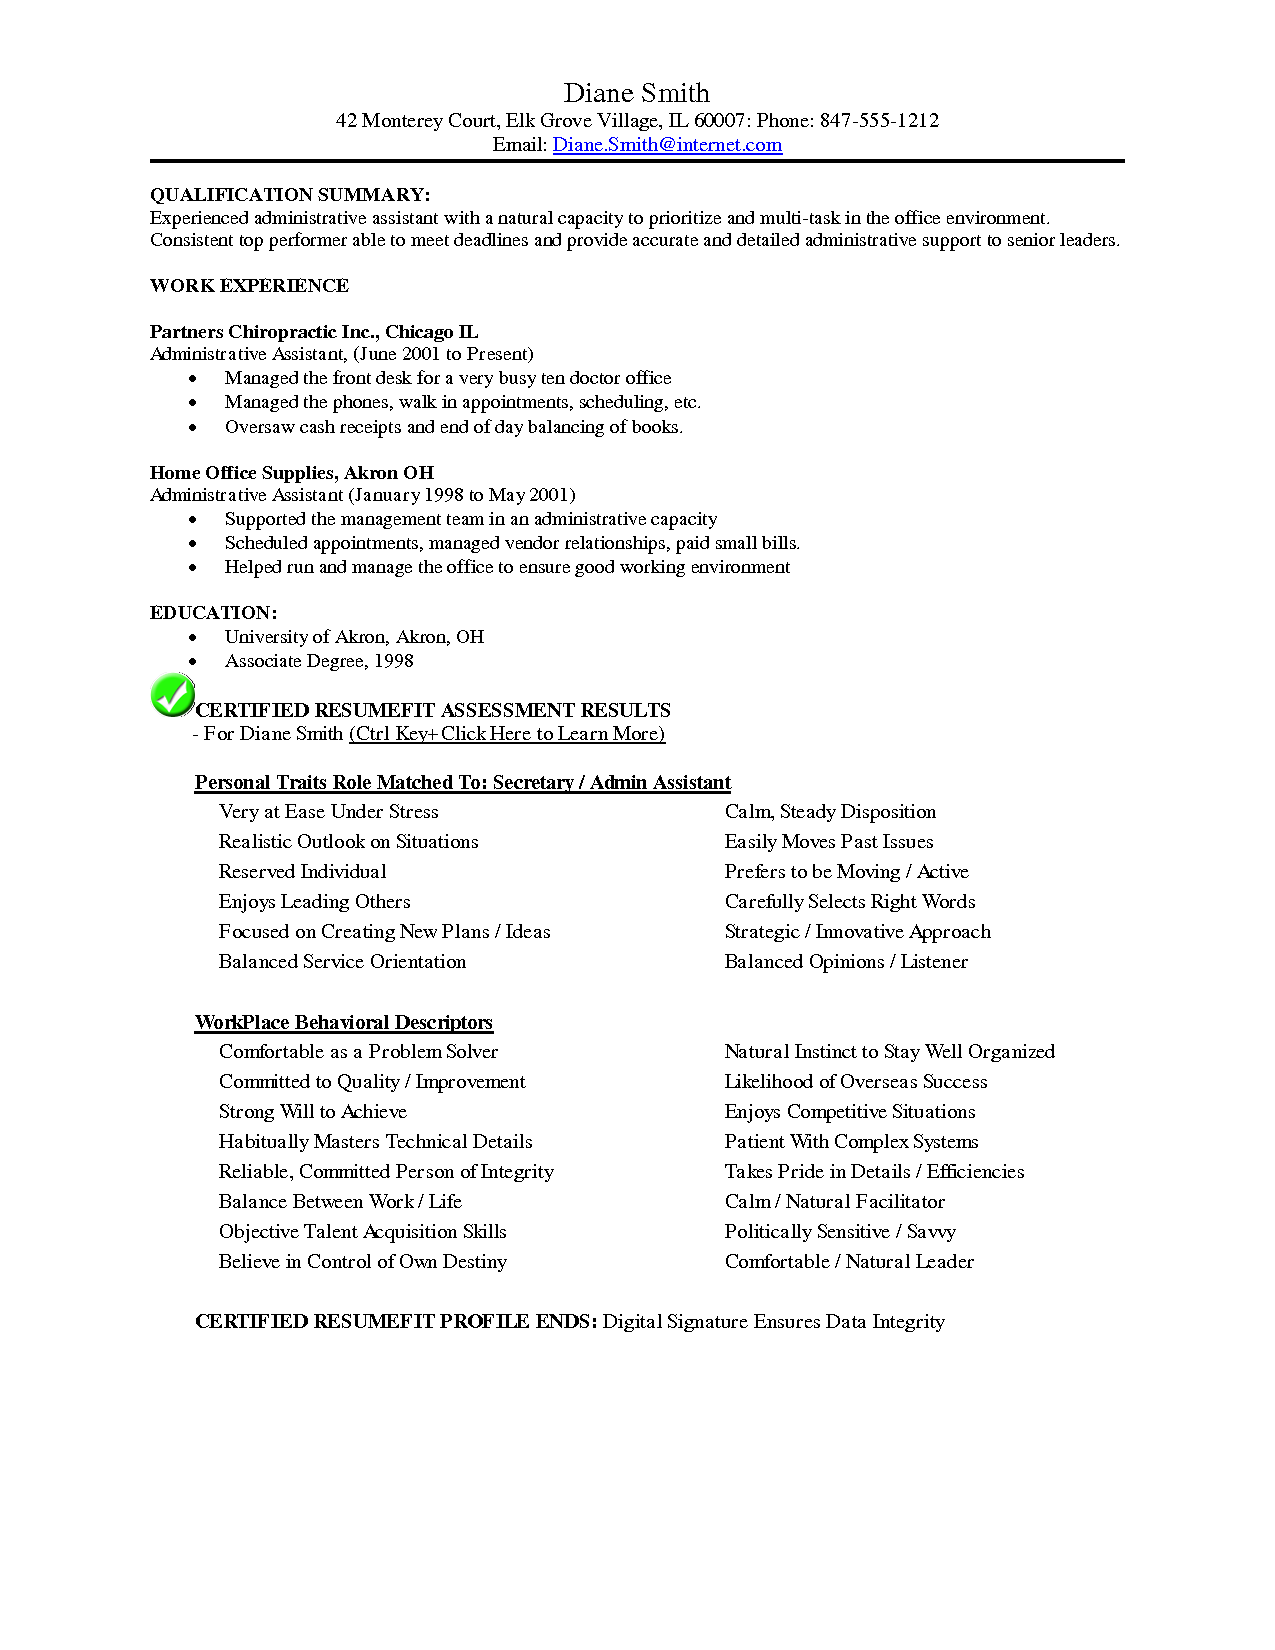 Sample Resume Objective Statement Chiropractic Resume Example  Resumes  Pinterest  Resume